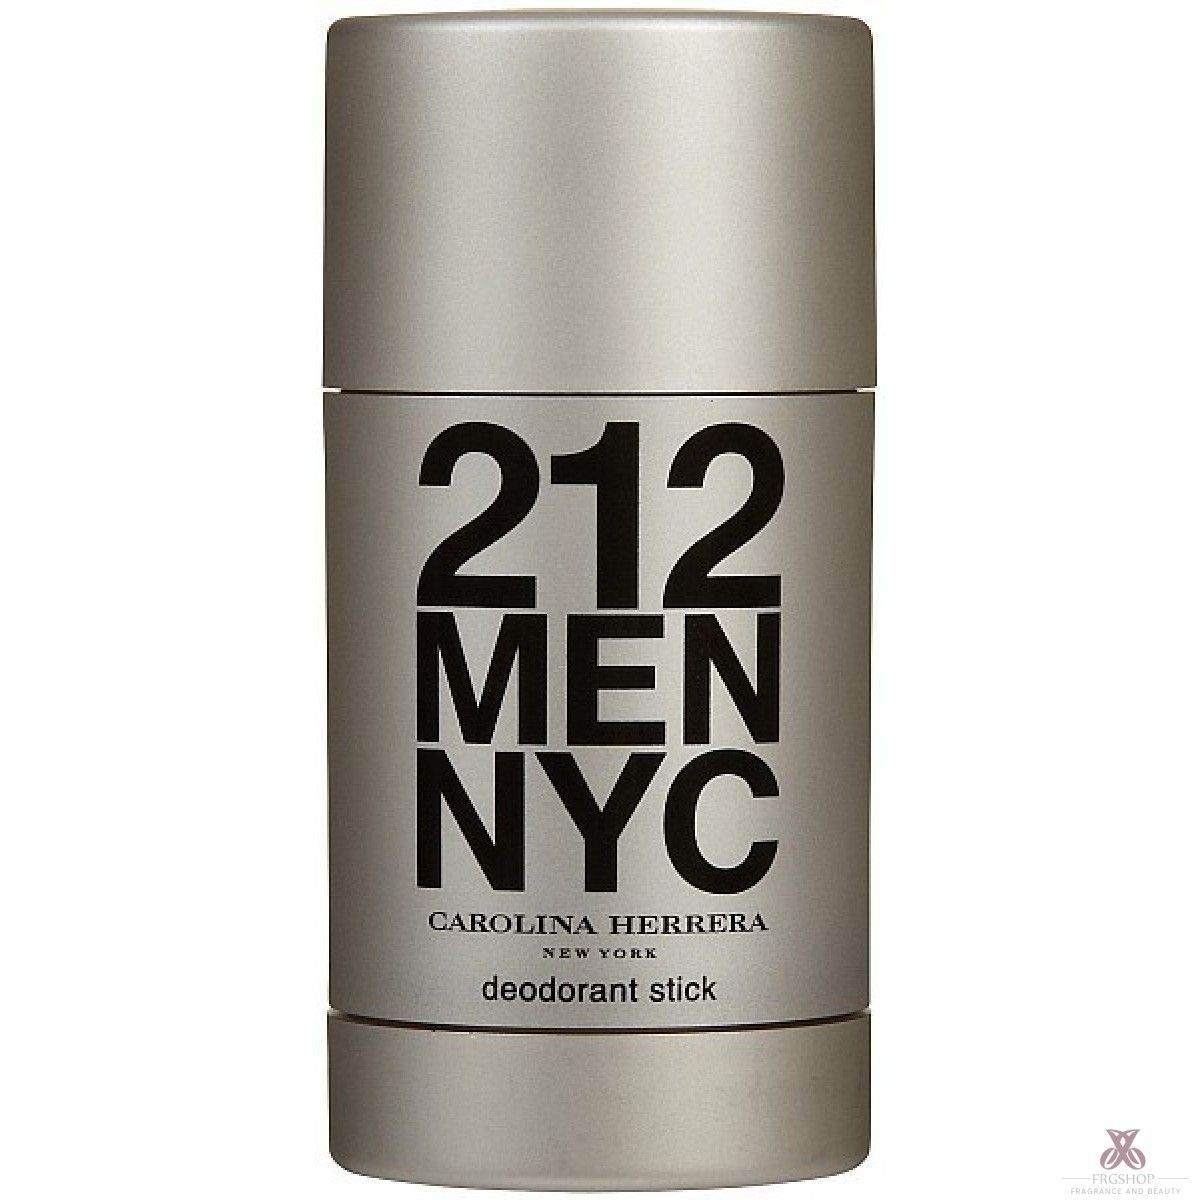 Carolina Herrera 212 Men Deodorante Stick 75 g